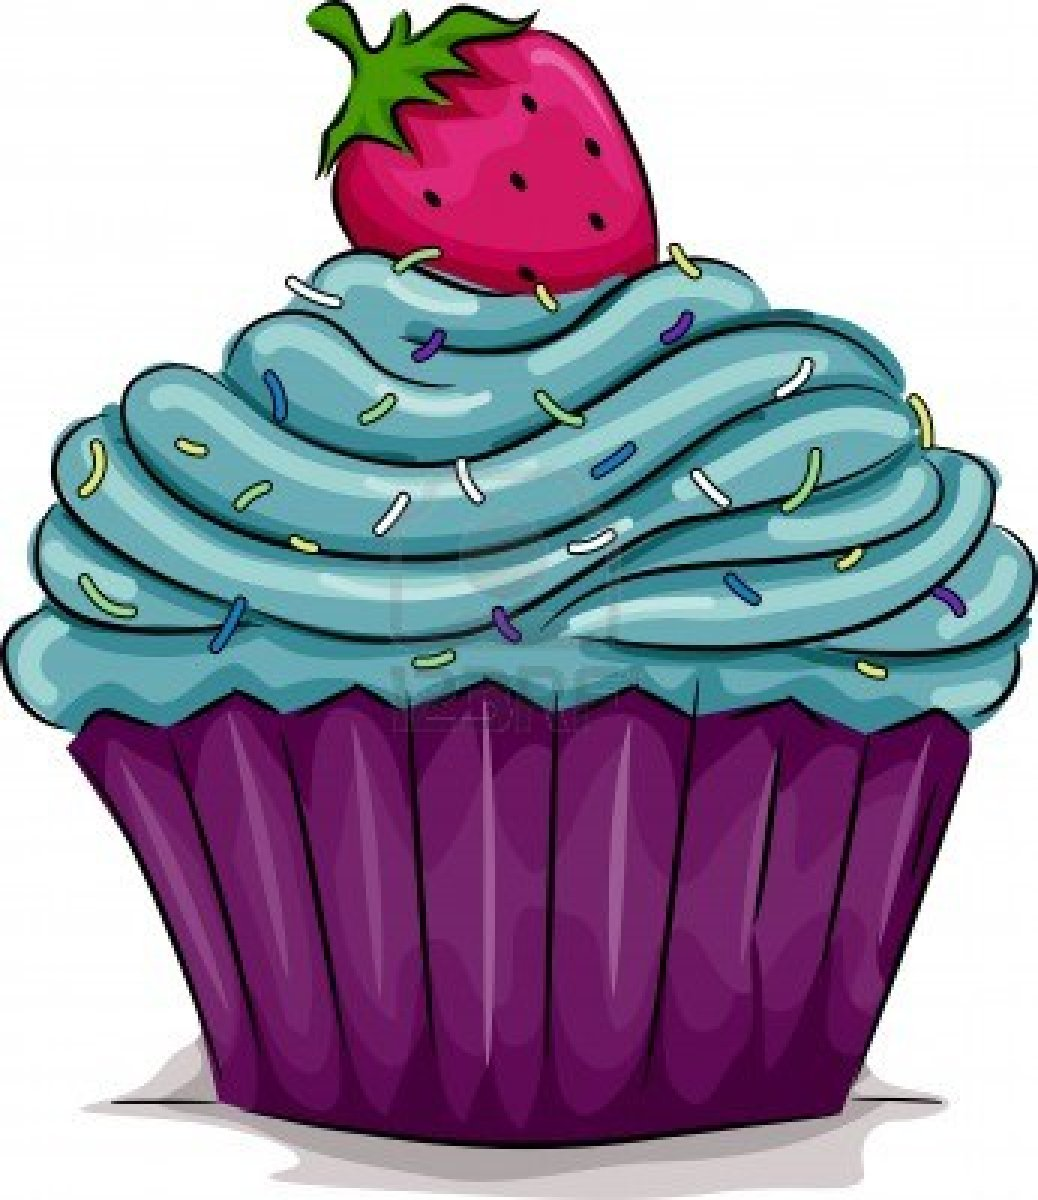 Cupcake Cartoons - Cliparts.co